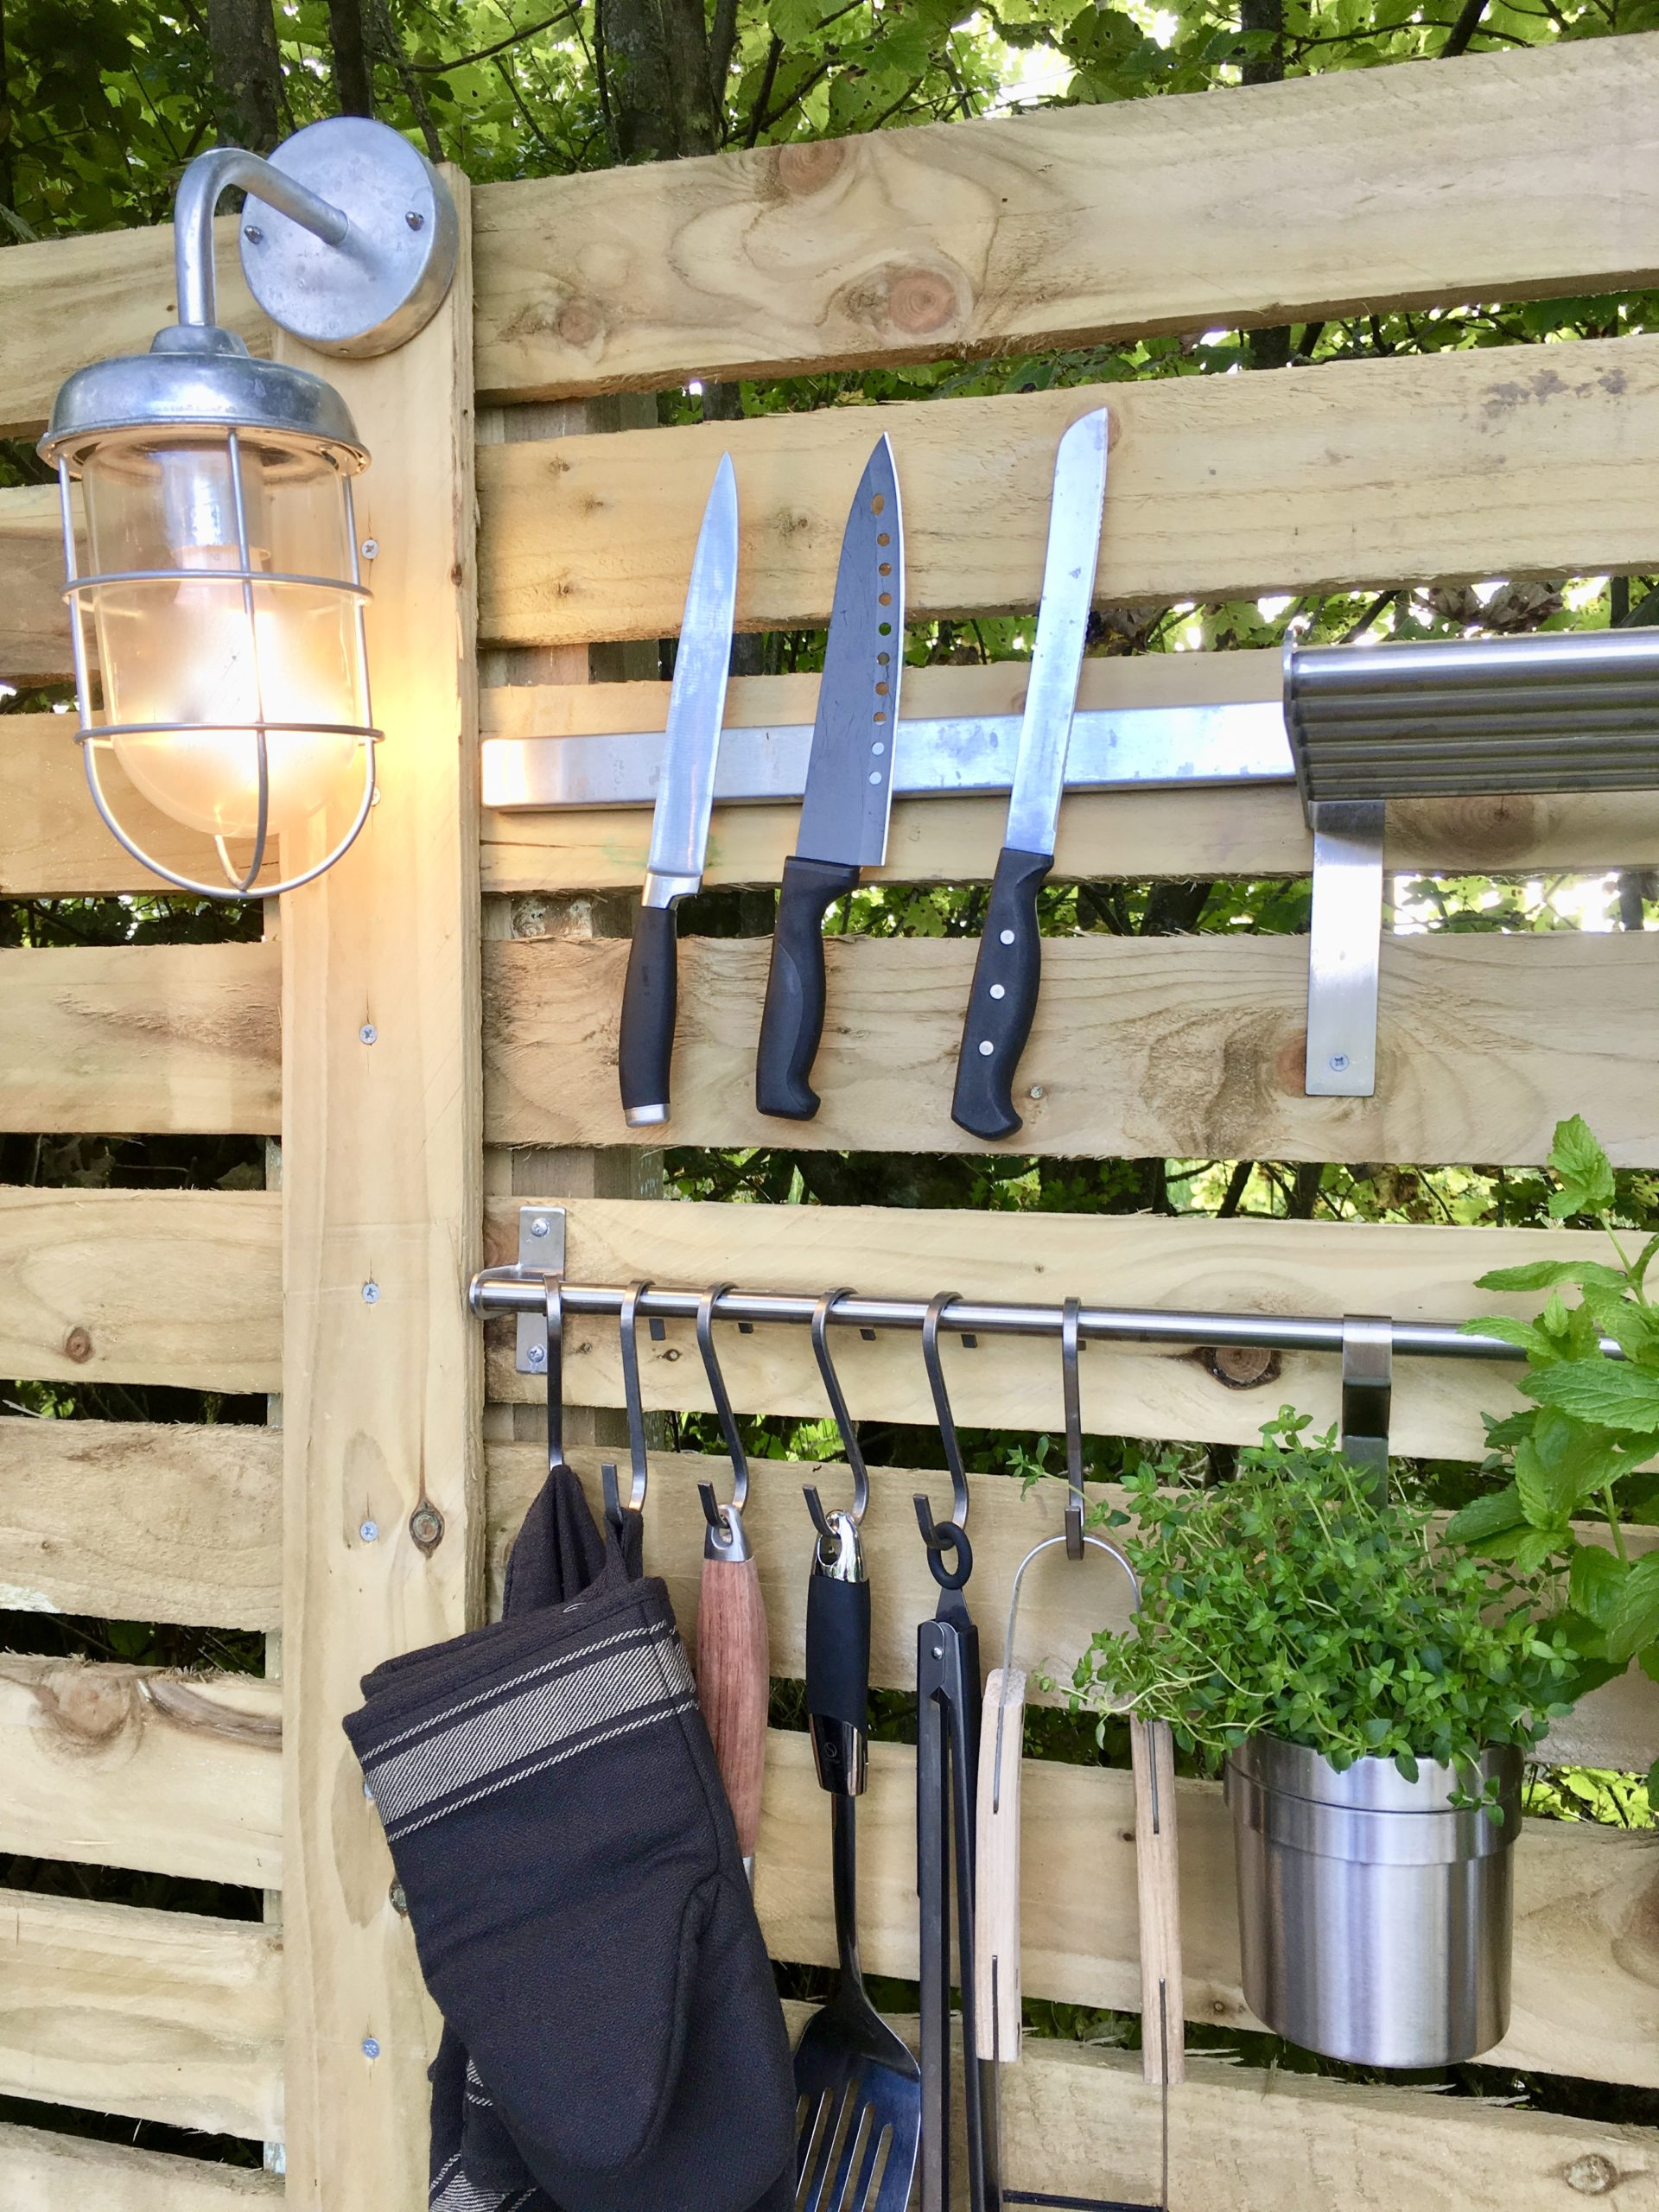 Utensil holders in outdoor kitchen